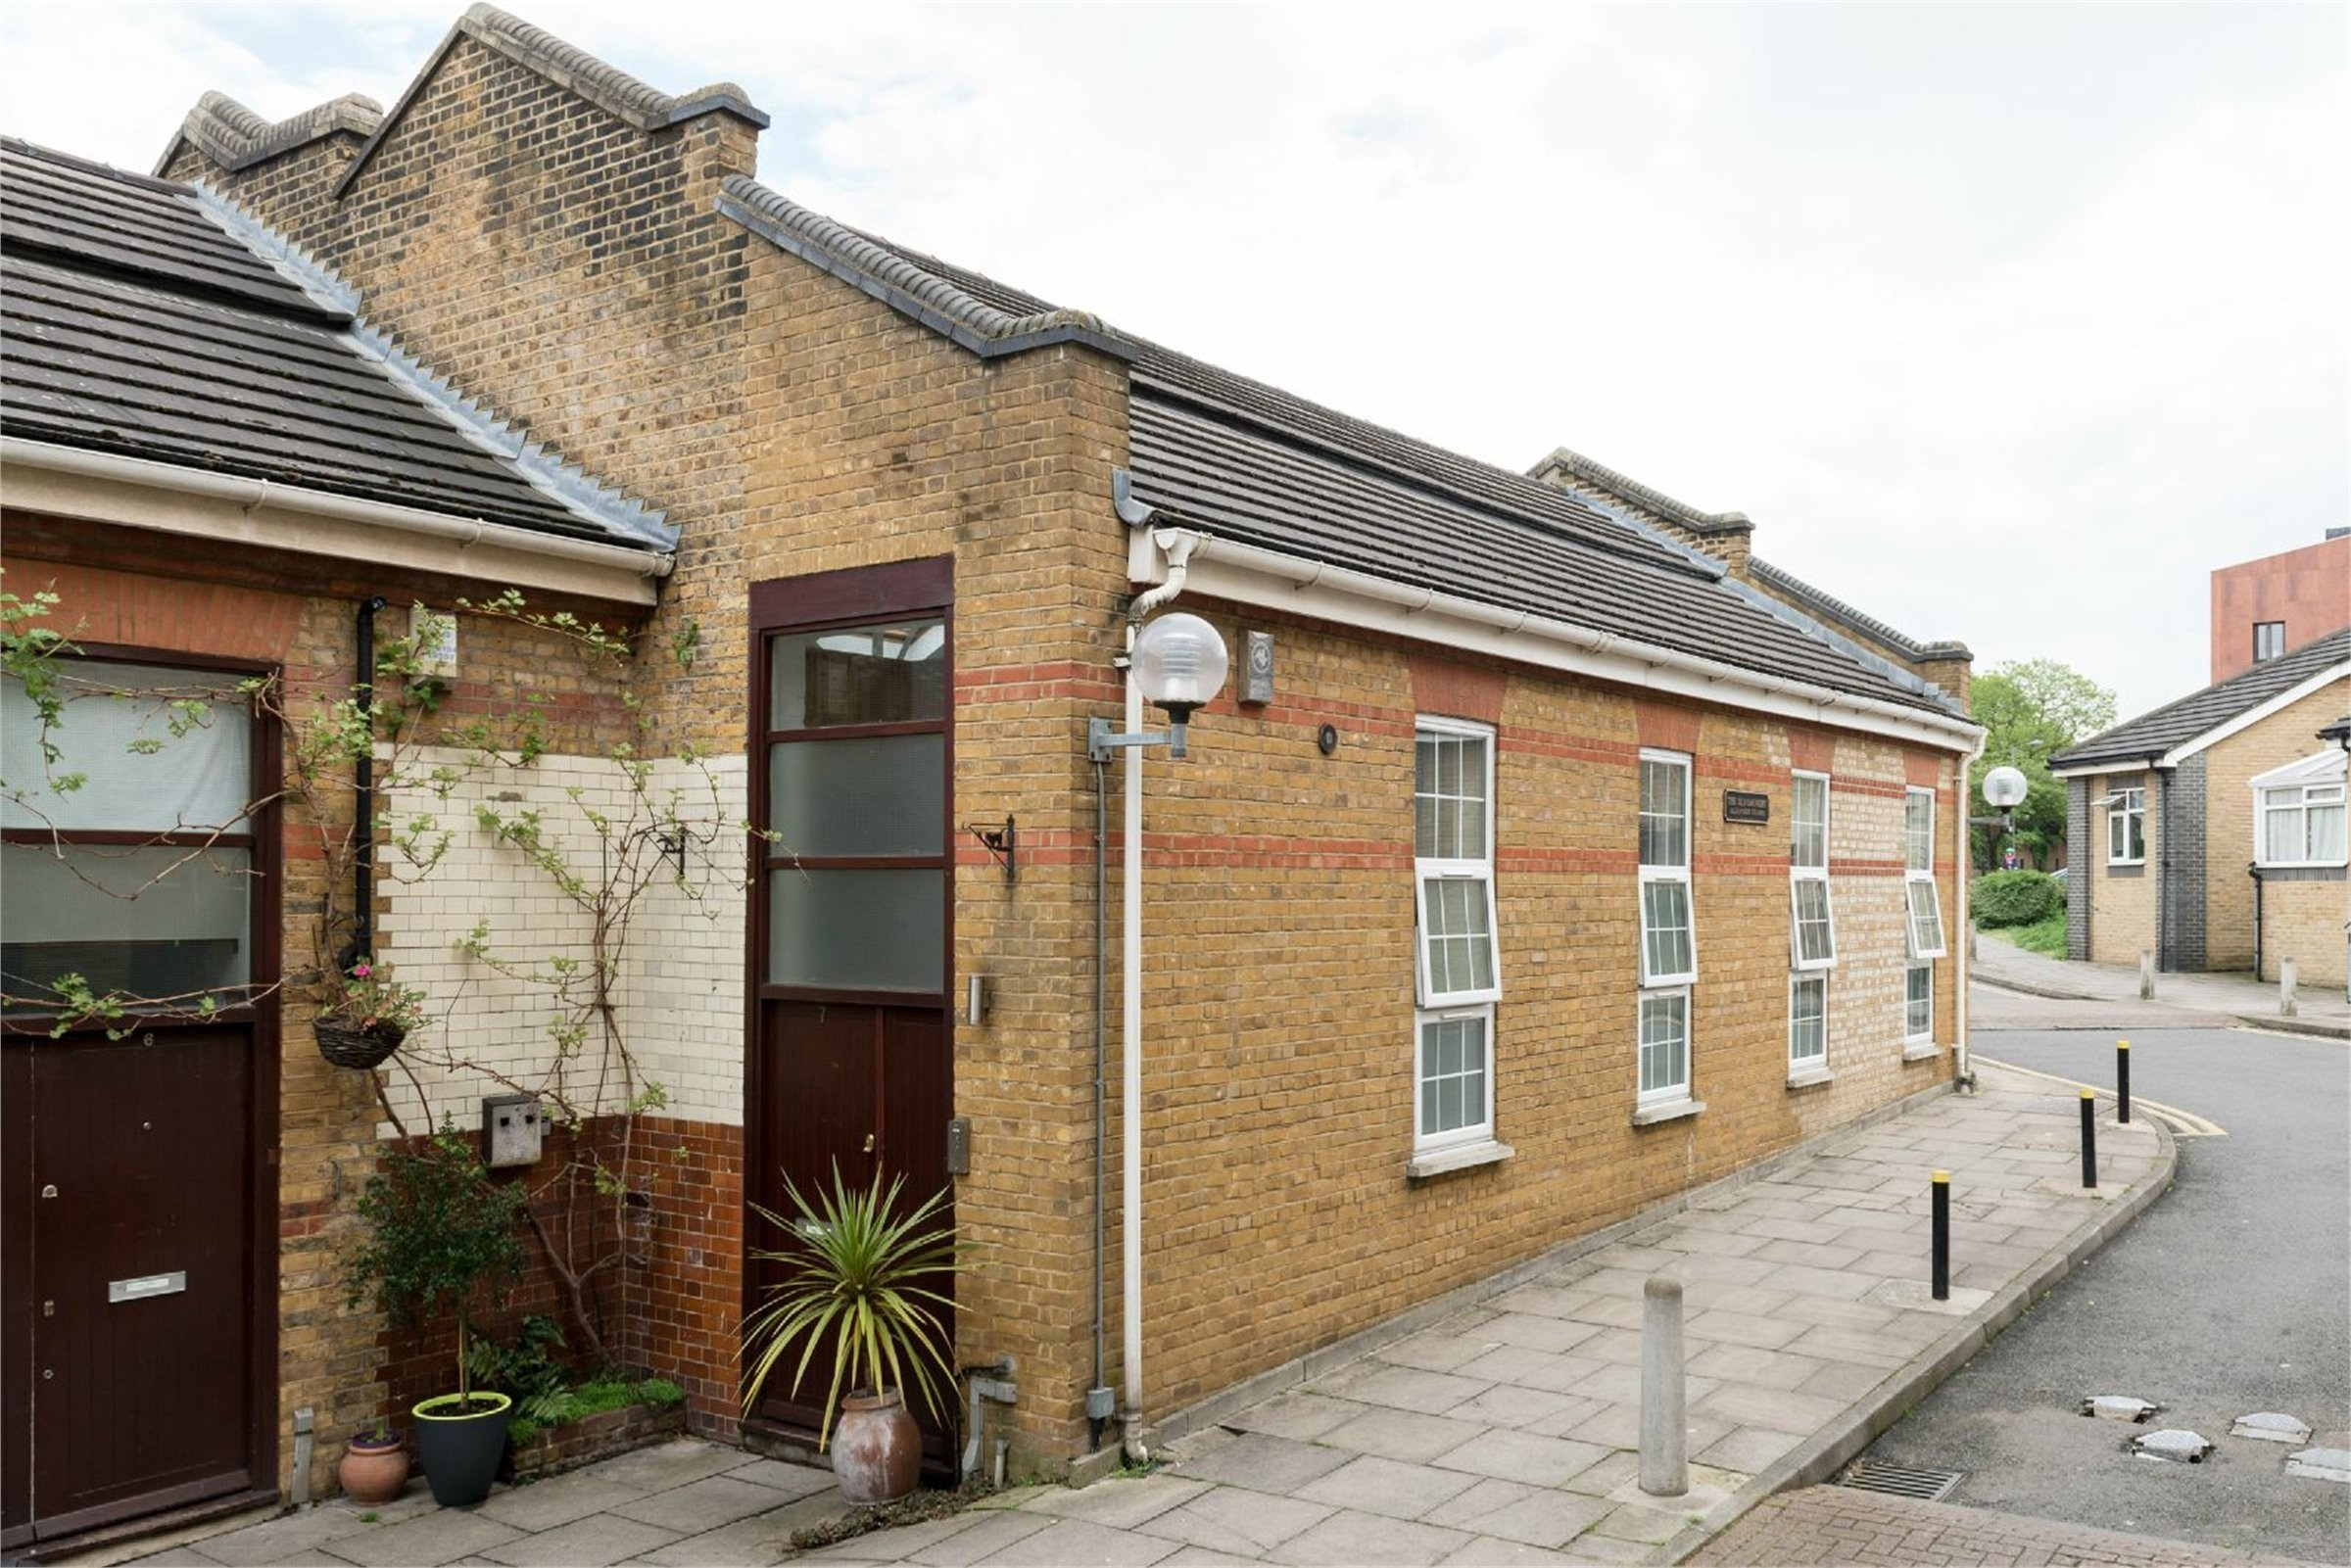 Unassuming building hides former photography studio, transformed into a two-bed house and now on the market for £1.35million